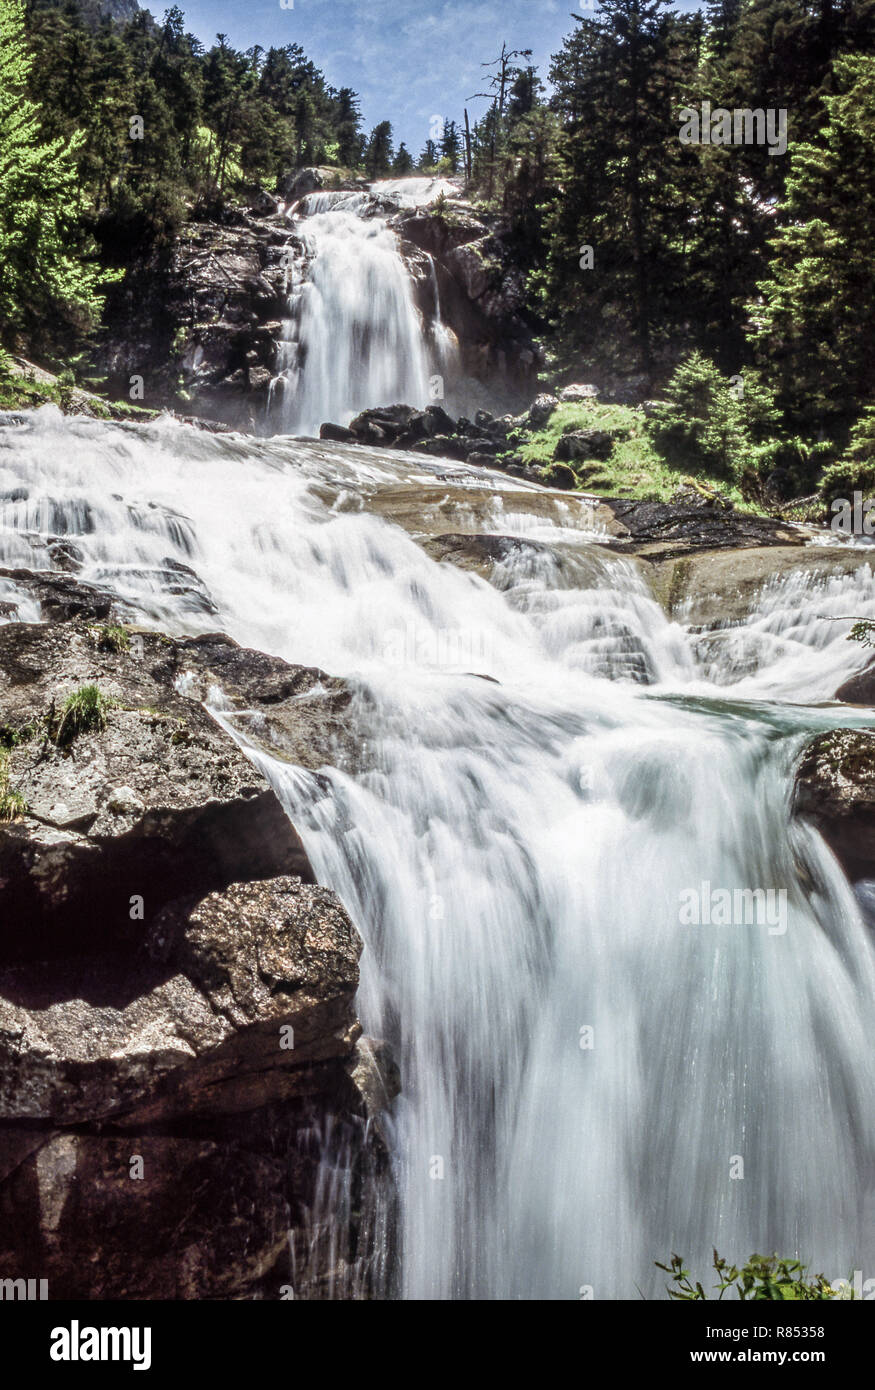 The Pyrenees.Department of Hautes-Pyrenees.France.Dramatic waterfall near Pont Espagne. - Stock Image